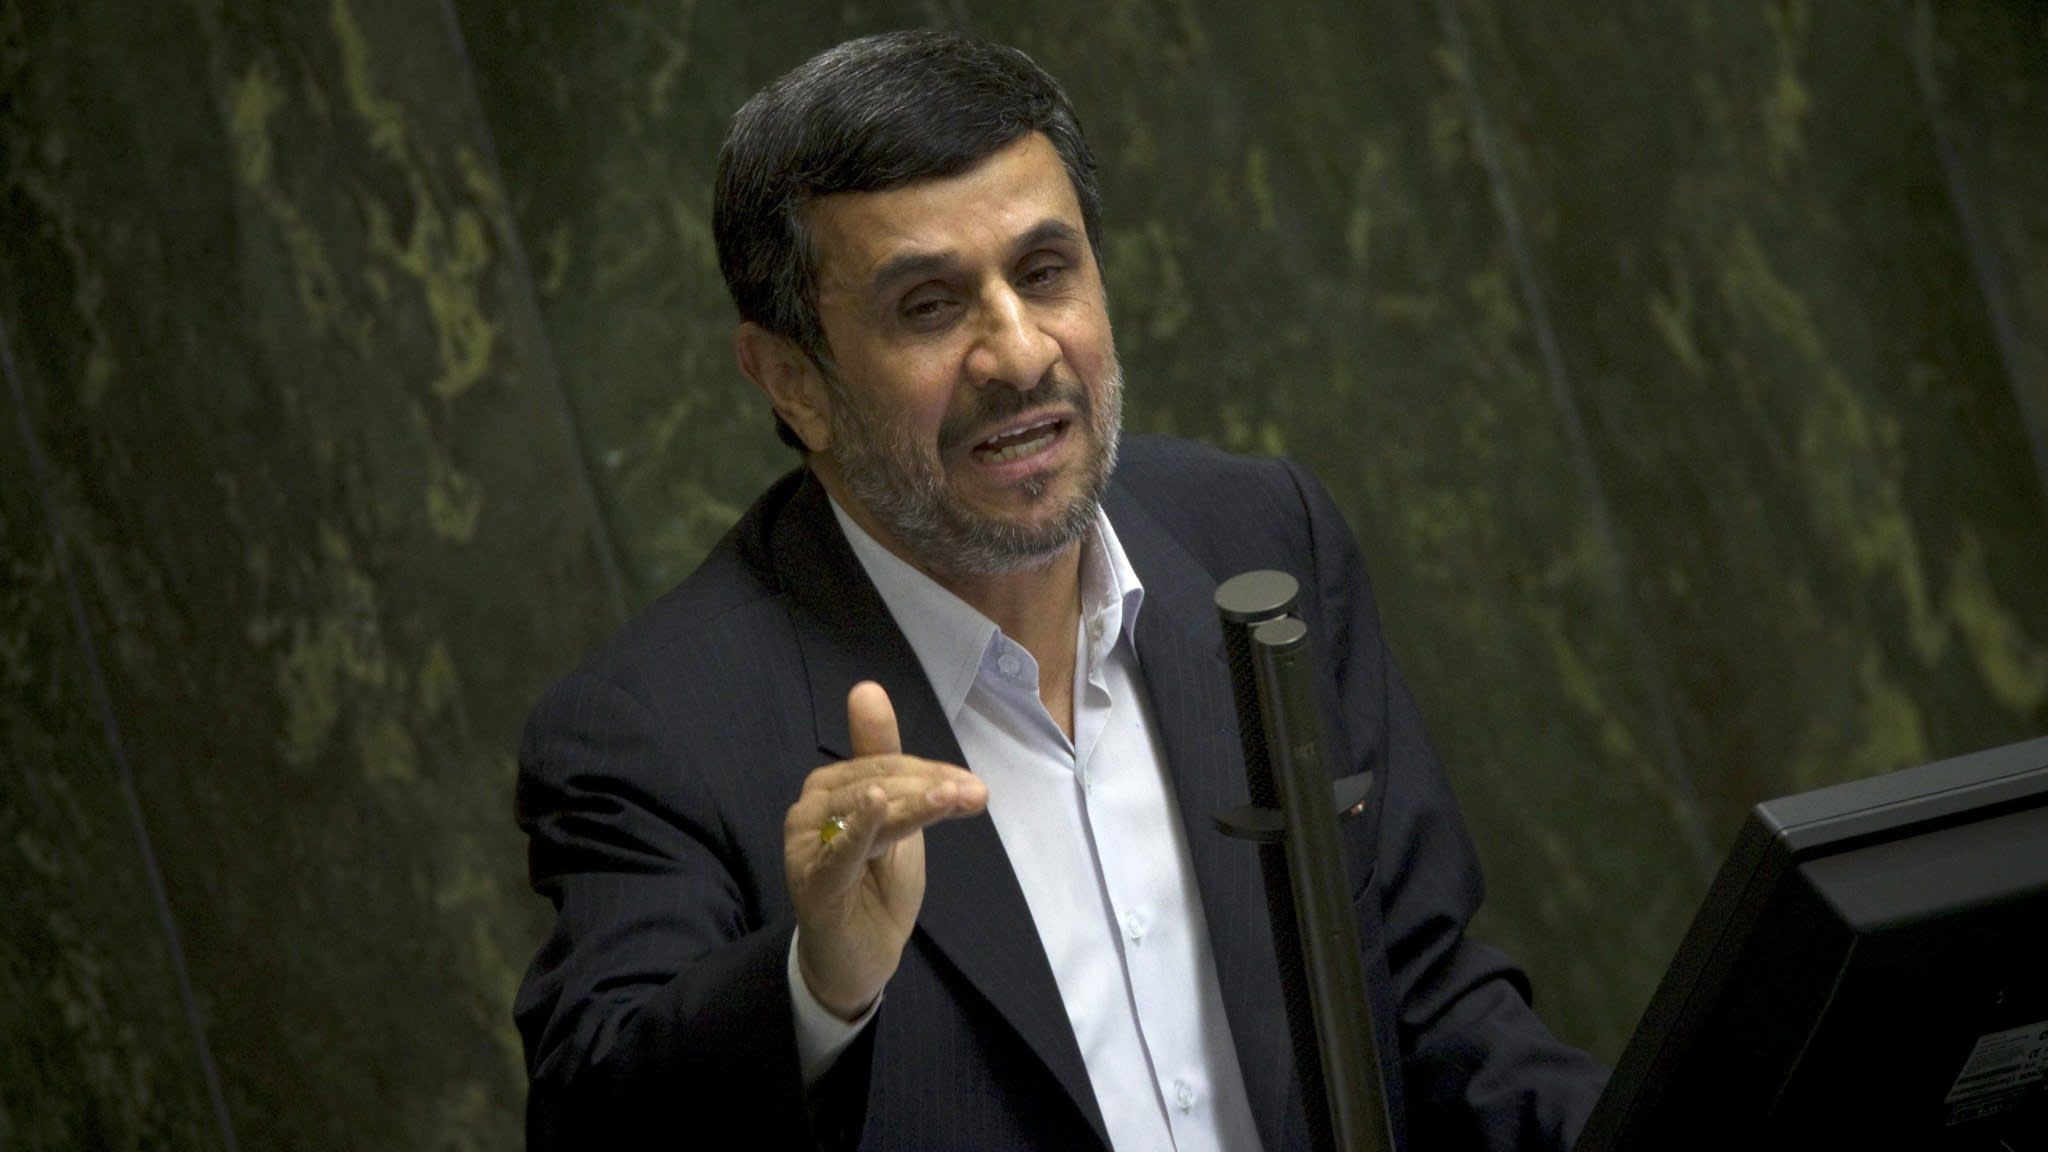 Ahmadi-Nejad becomes thorn in the side of Iranian regime